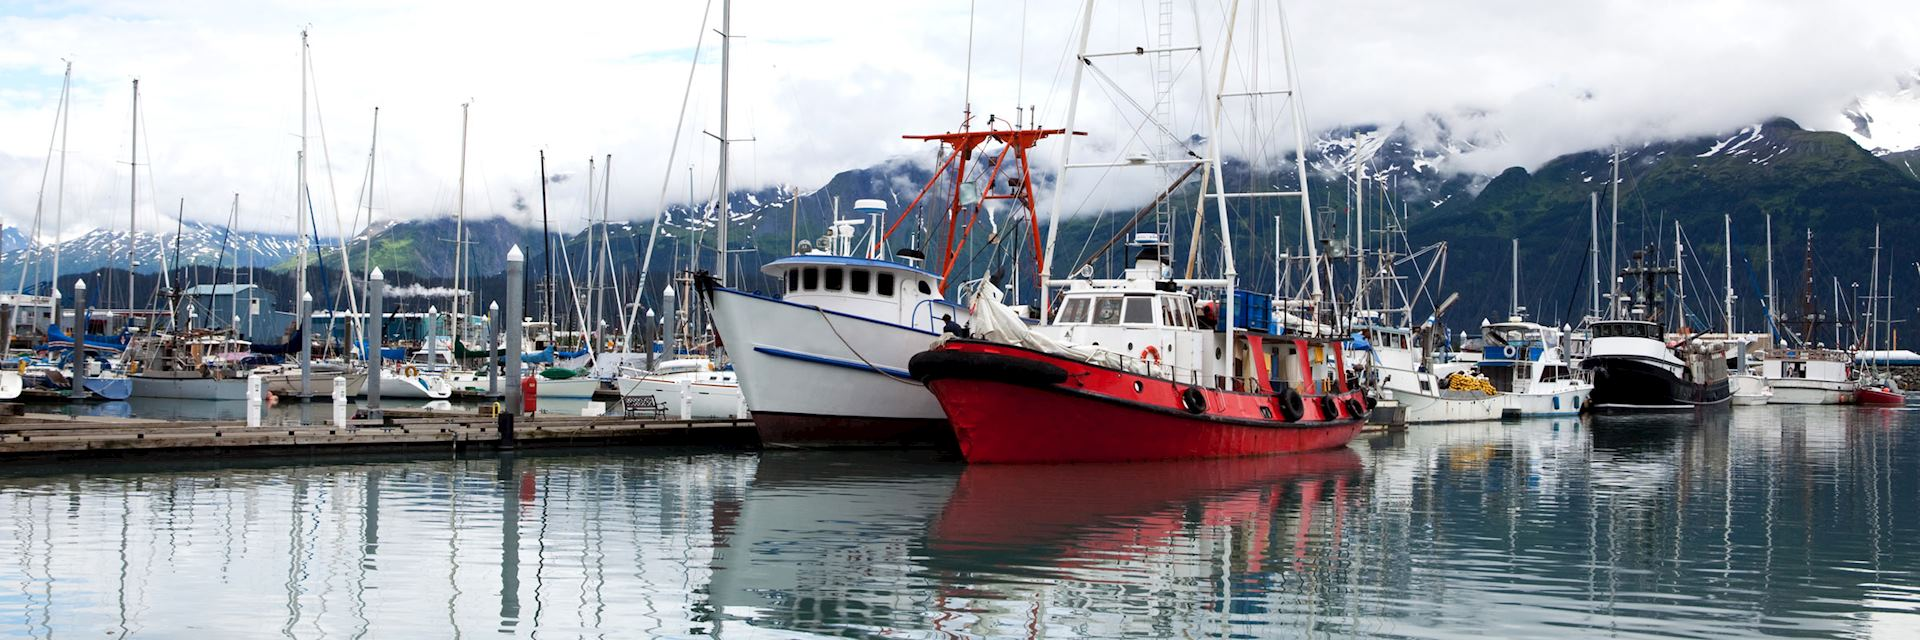 Fishing boats in Seward Harbor, Alaska